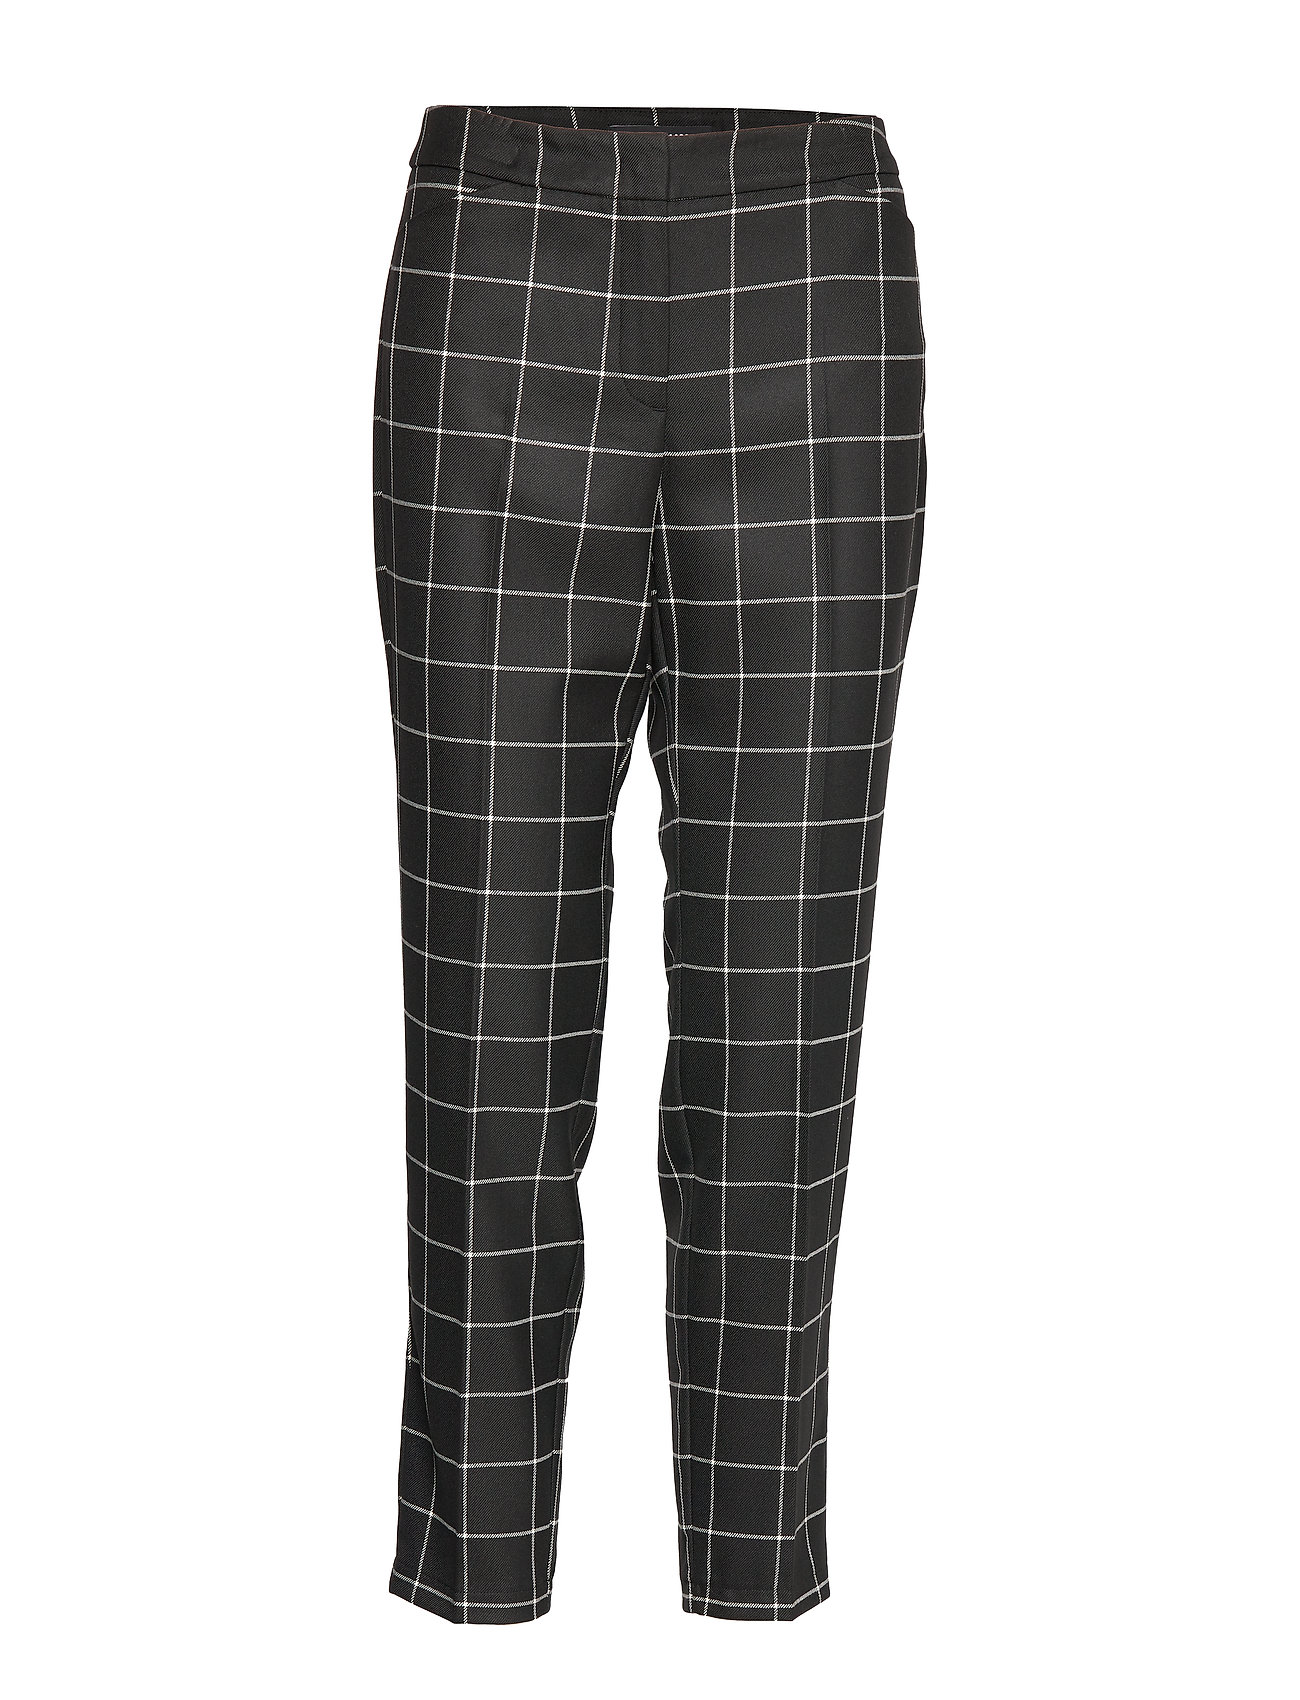 Taifun CROP LEISURE TROUSER - BLACK PATTERNED